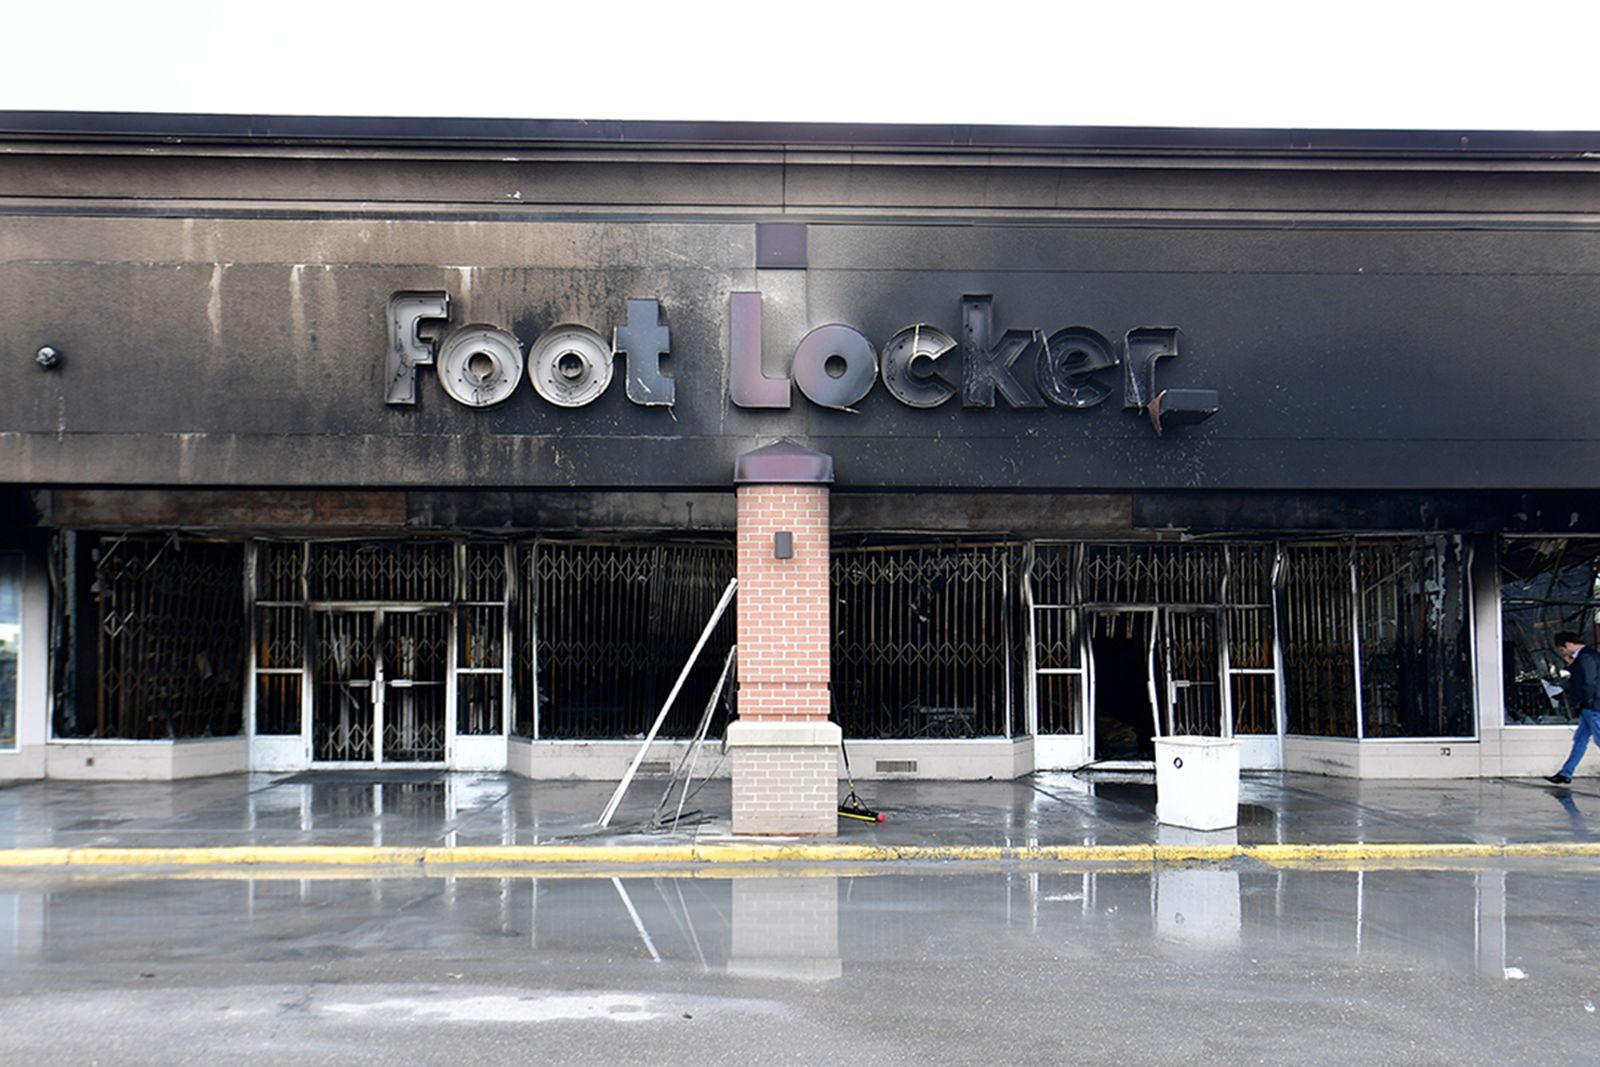 burnt footlocker store front